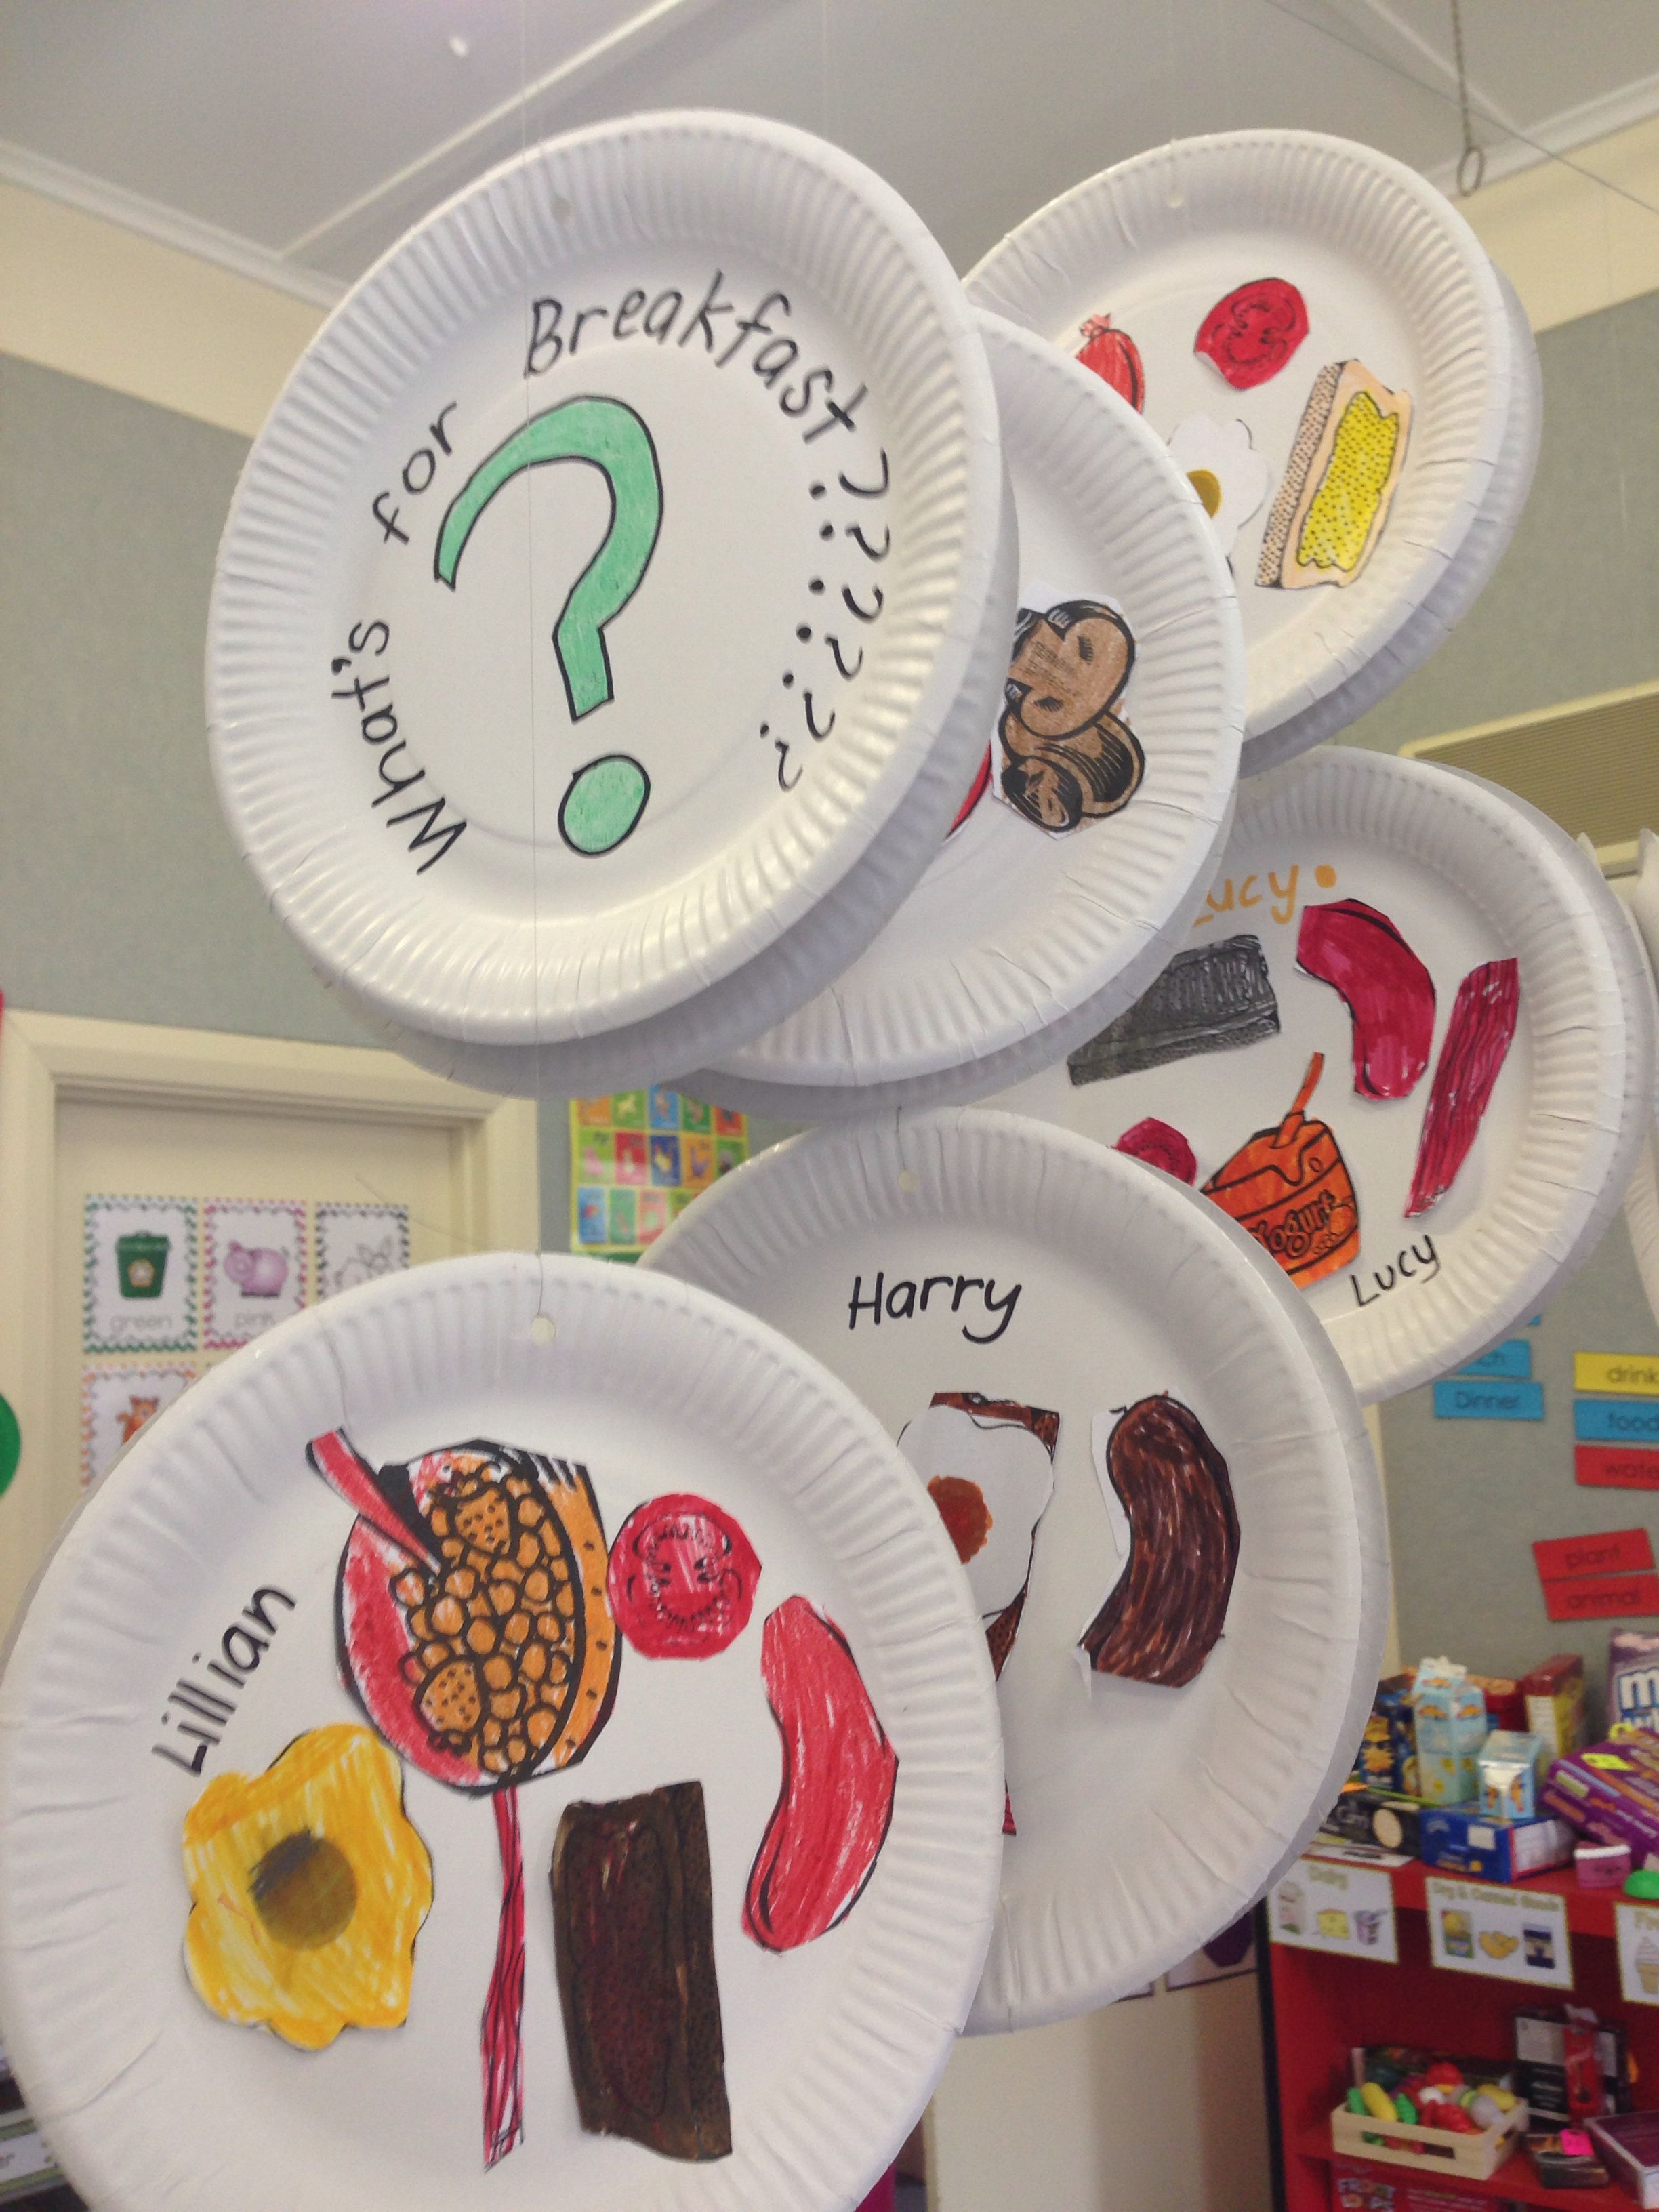 Paper plate display what we like to eat for breakfast